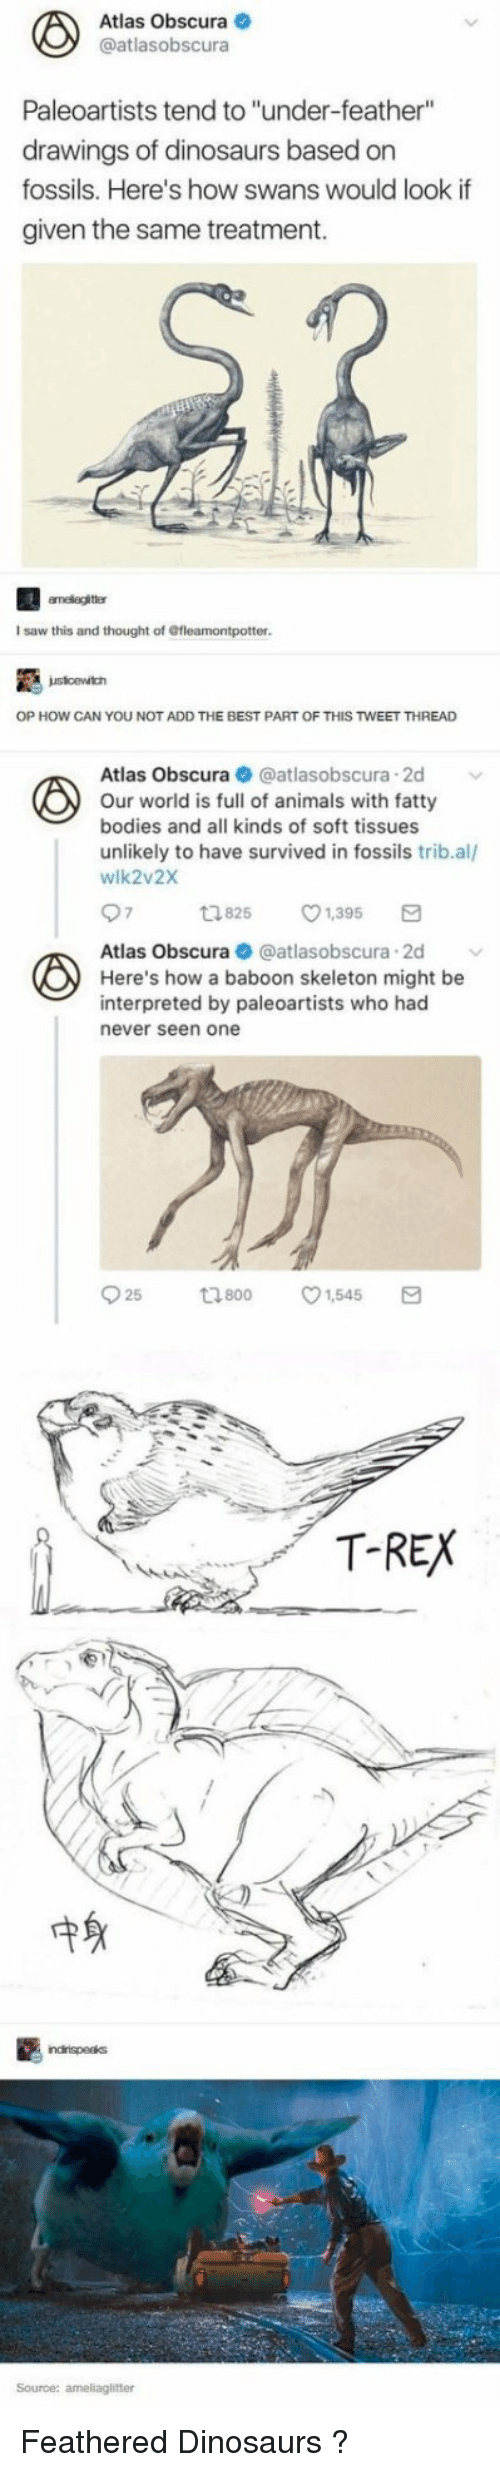 """swans: Atlas Obscura  @atlasobscura  Paleoartists tend to """"under-feather""""  drawings of dinosaurs based on  fossils. Here's how swans would look if  given the same treatment.  I saw this and thought of Gfleamontpotter  OP HOW CAN YOU NOT ADD THE BEST PART OF THIS TWEET THREAD  Atlas Obscura @atlasobscura.2d  Our world is full of animals with fatty  bodies and all kinds of soft tissues  unlikely to have survived in fossils trib.al/  wlk2v2X  1825 1,395  Atlas Obscura  atlasobscura 2d  Here's how a baboon skeleton might be  interpreted by paleoartists who had  never seen one  T-REX  中身  Source: ameliaglitter Feathered Dinosaurs ?"""